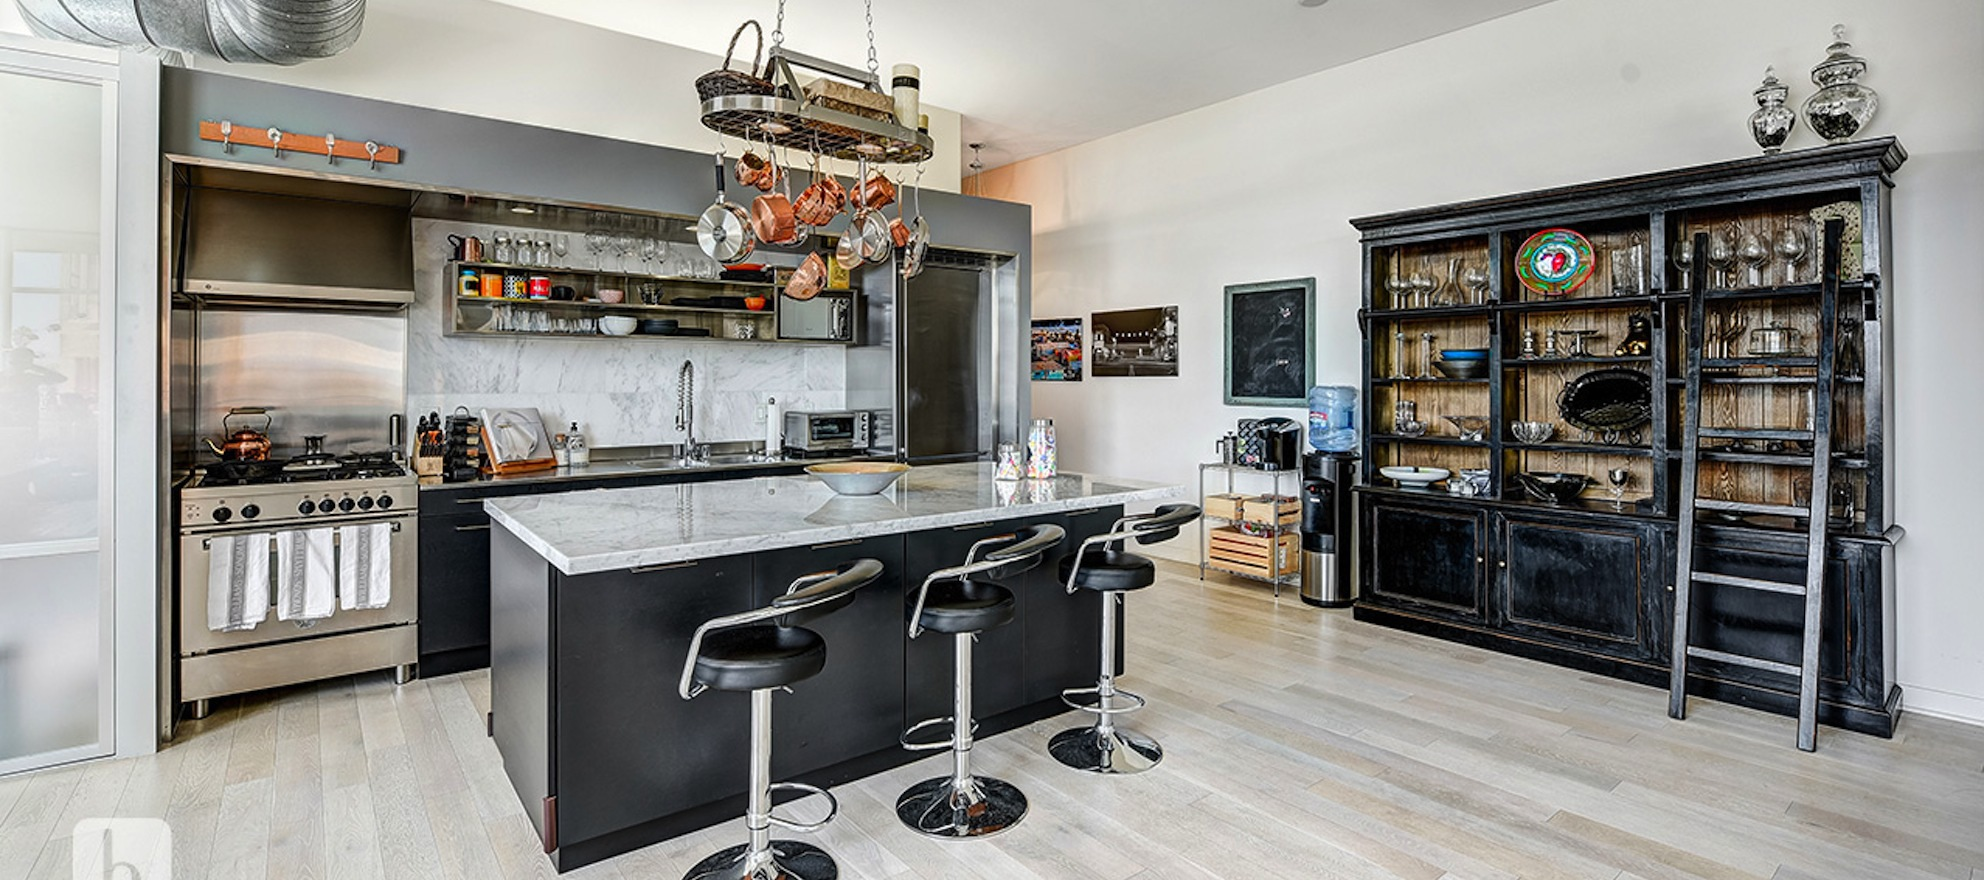 3-D home of the day: Stylish living at Gallery Lofts